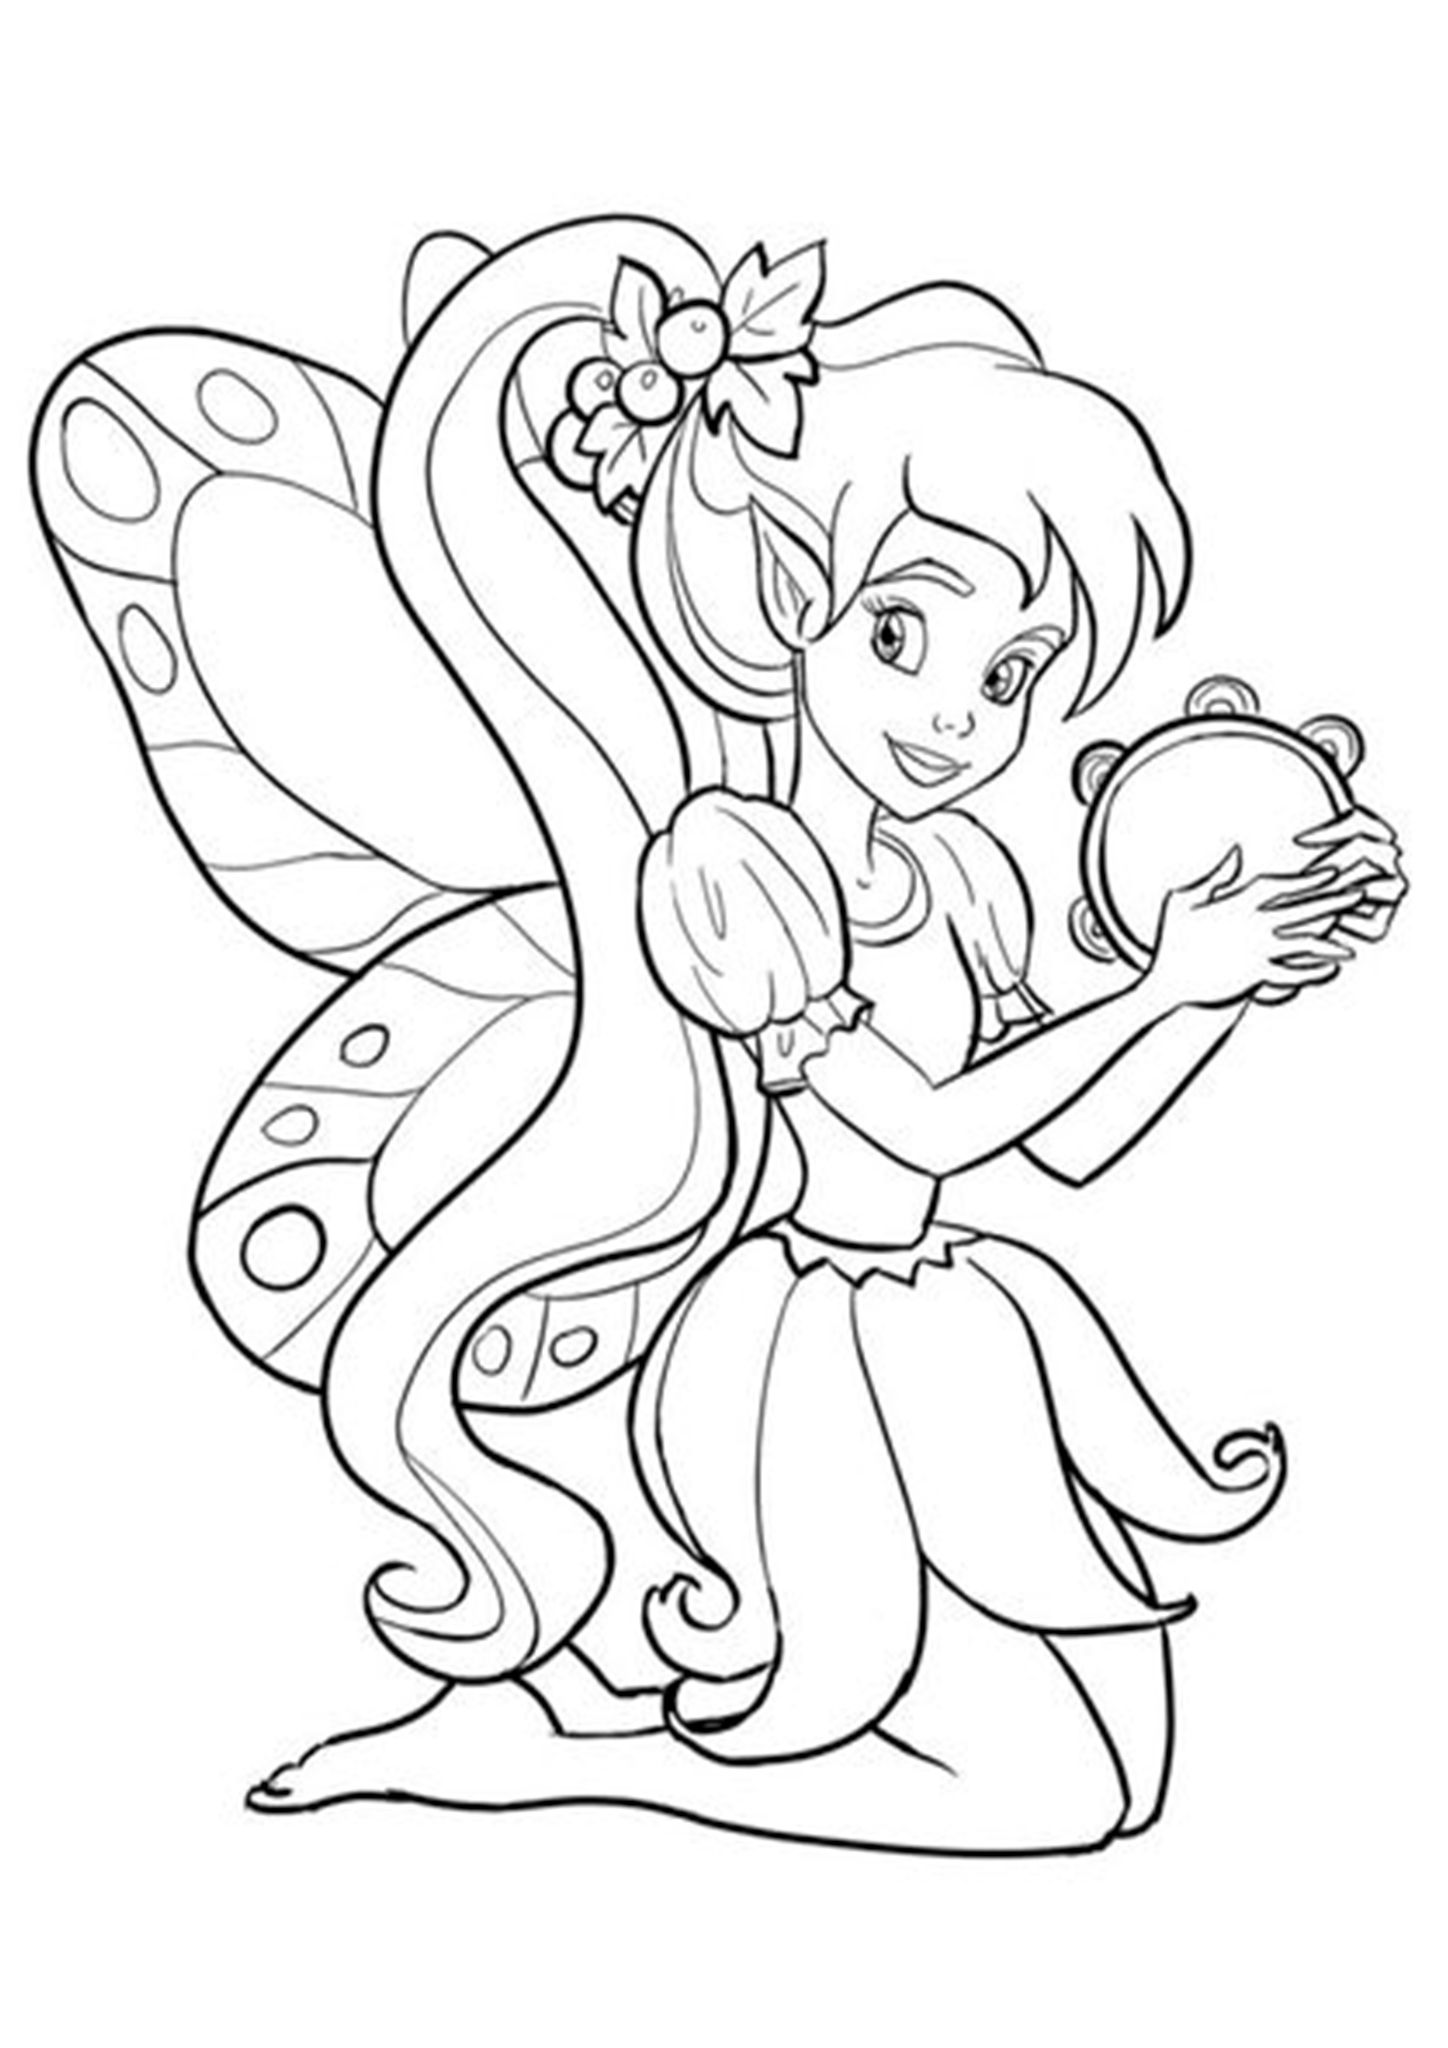 Free & Easy To Print Fairy Coloring Pages in 2020 | Fairy ...